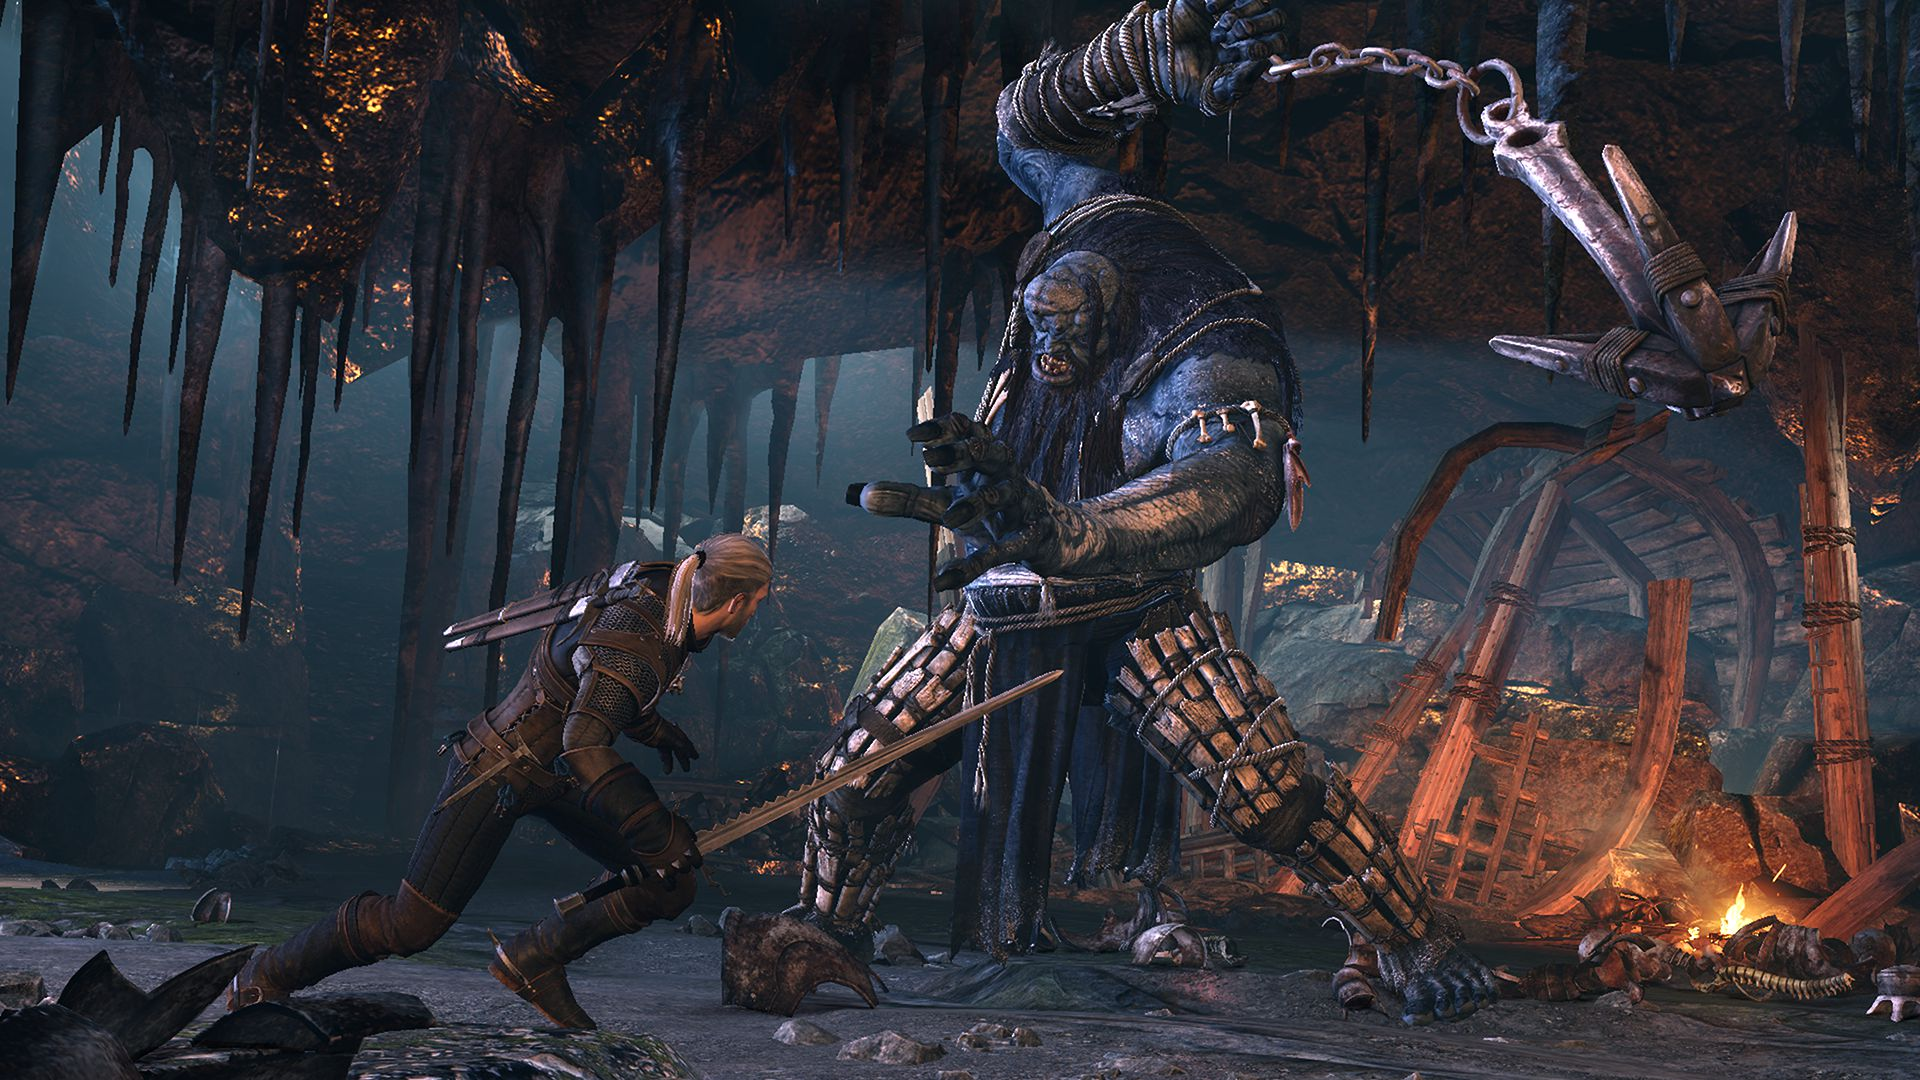 6274_the_witcher_3_wild_hunt_ice_giant_fight